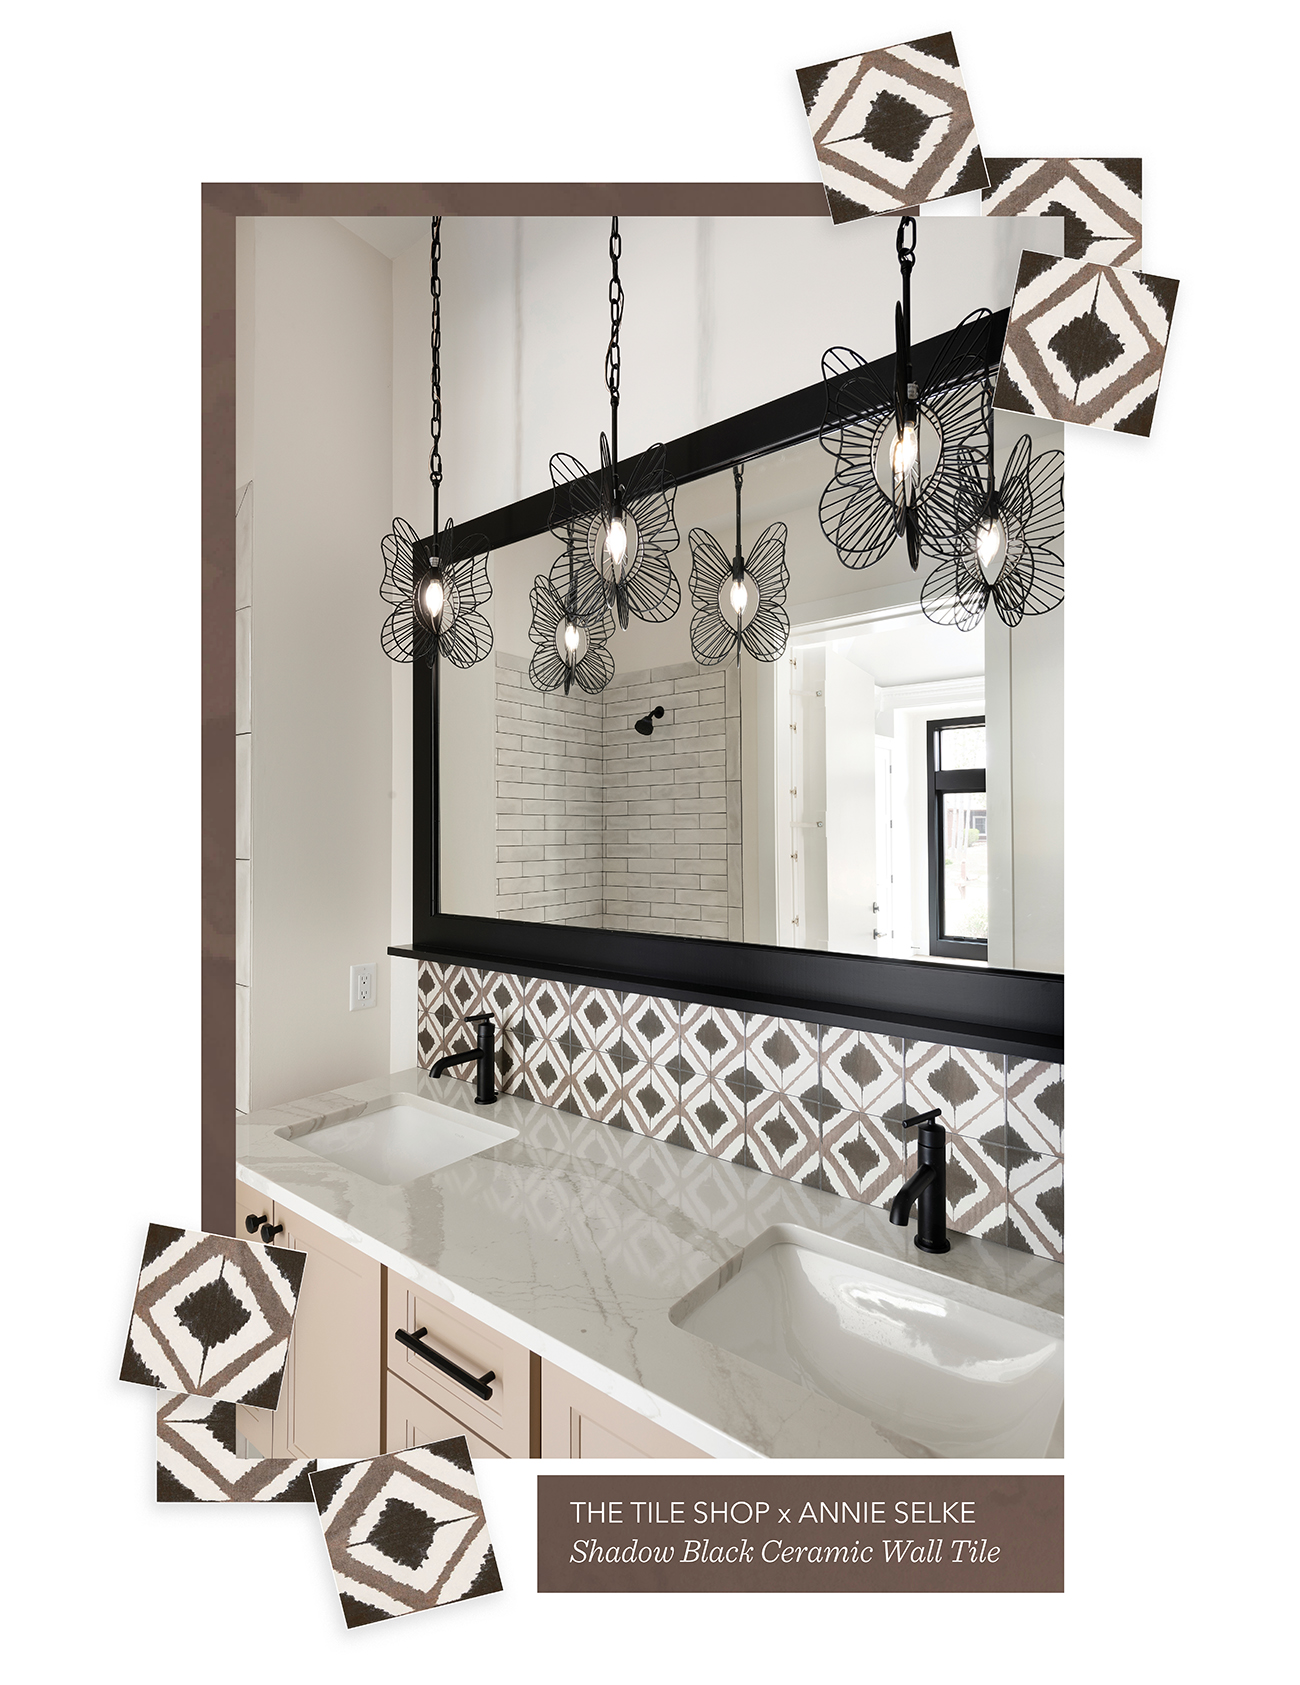 10 ideas for decorating with tile